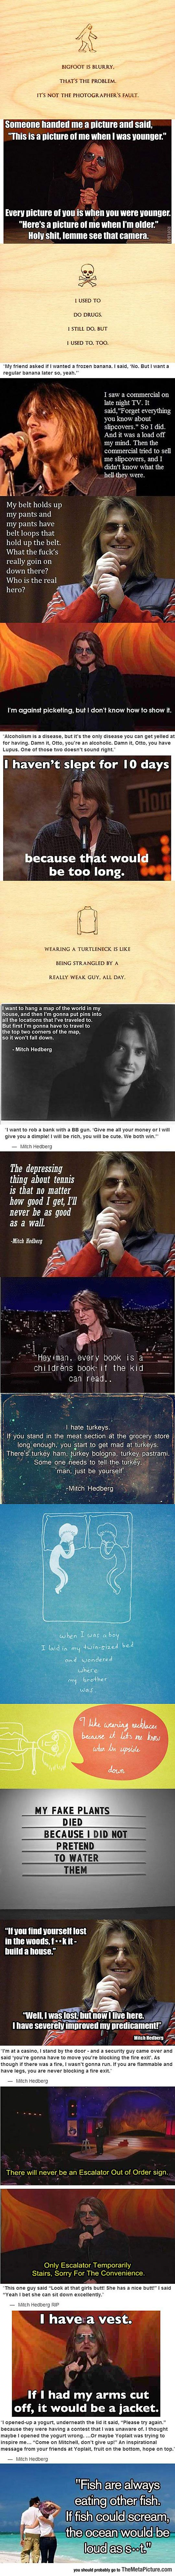 Mitch Hedberg Was Brilliant, RIP!